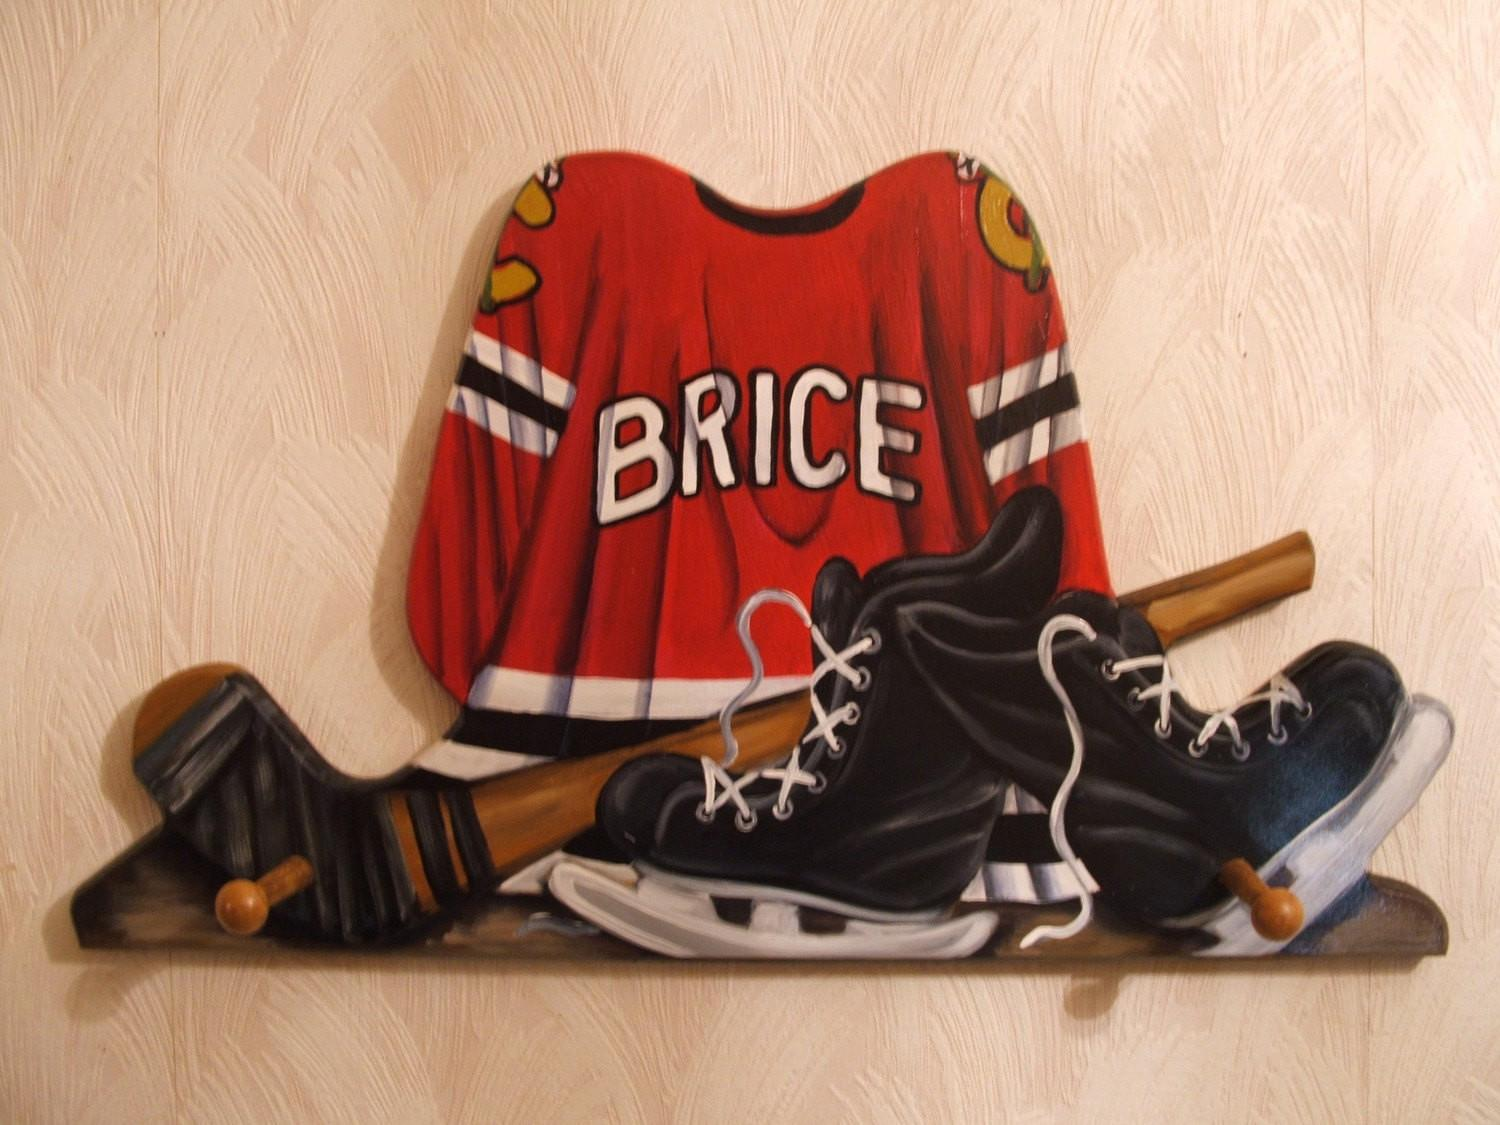 Custom Hockey Jersey Wall Hanging Pegs